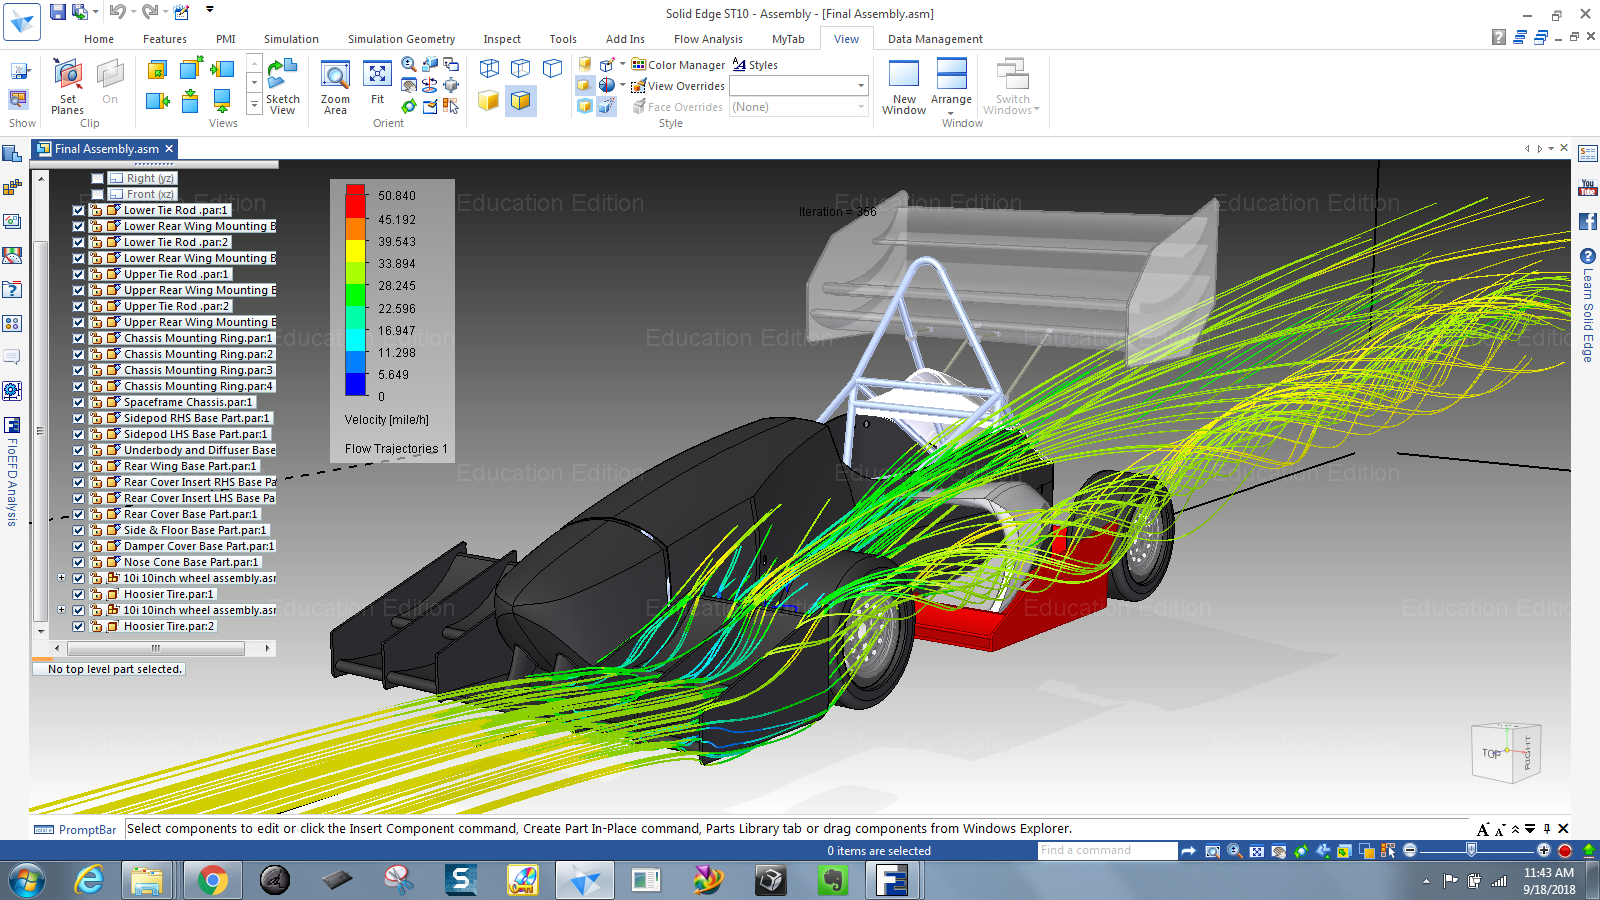 FSAE Online Training Videos - Your goal is to design and build a competitive race car, not spend majority of your time learning the software tools. Check out our application specific workflows for CAD, CFD, and FEA that accelerate your learning curve.Roll-out to begin Fall 2019.